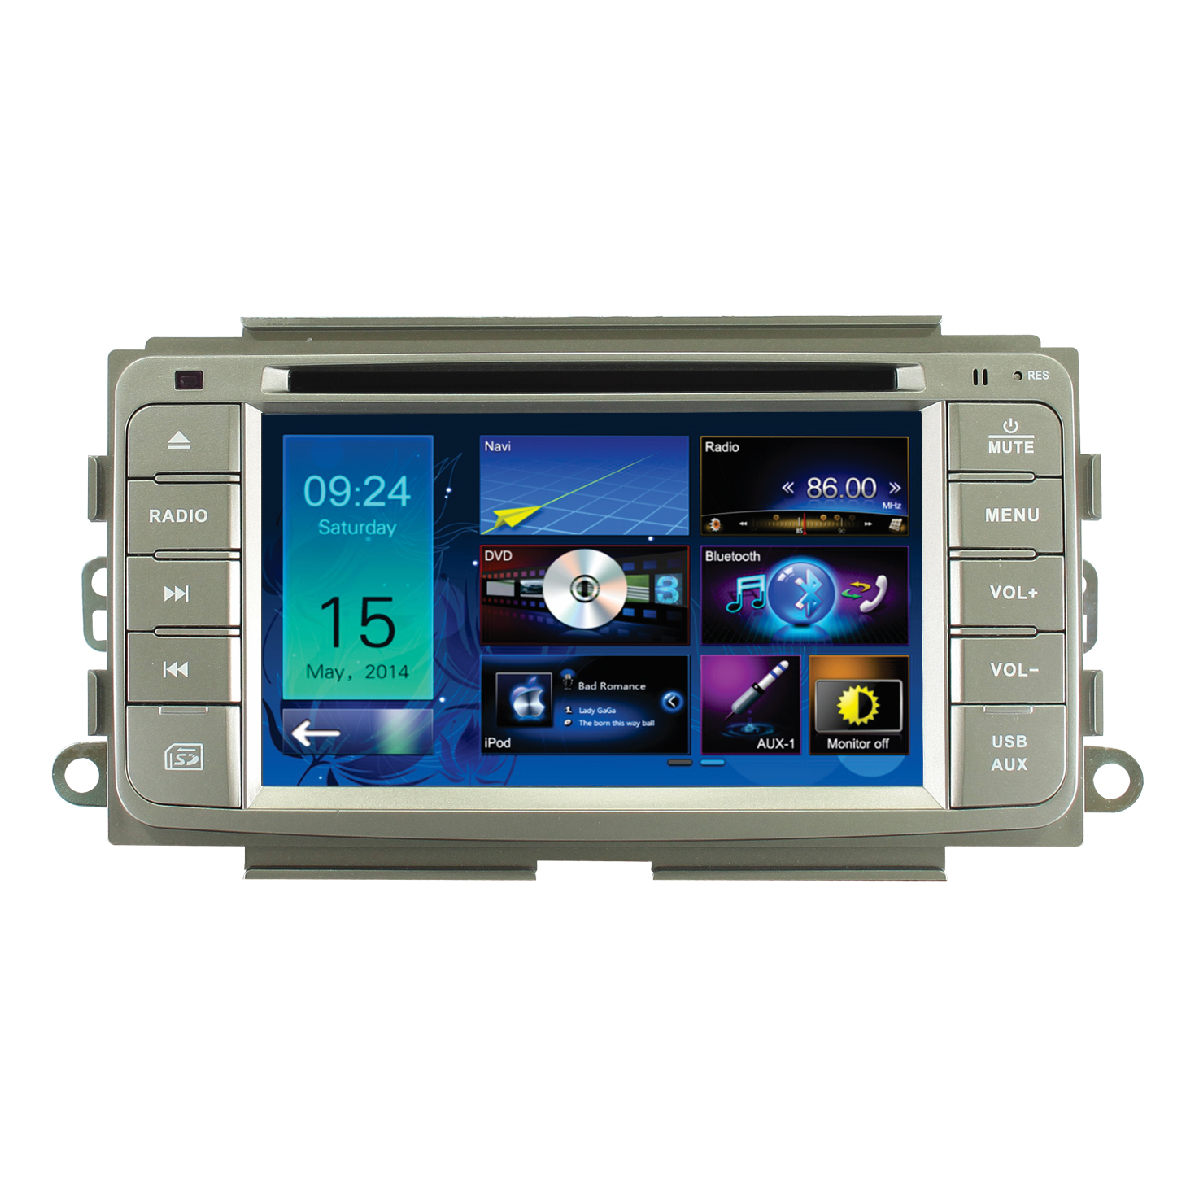 Jual Mobiletech Headunit Android For Ignis 9 Inch Kalung Etnik 3203 08 Head Unit Double Din 62 Agya Ayla